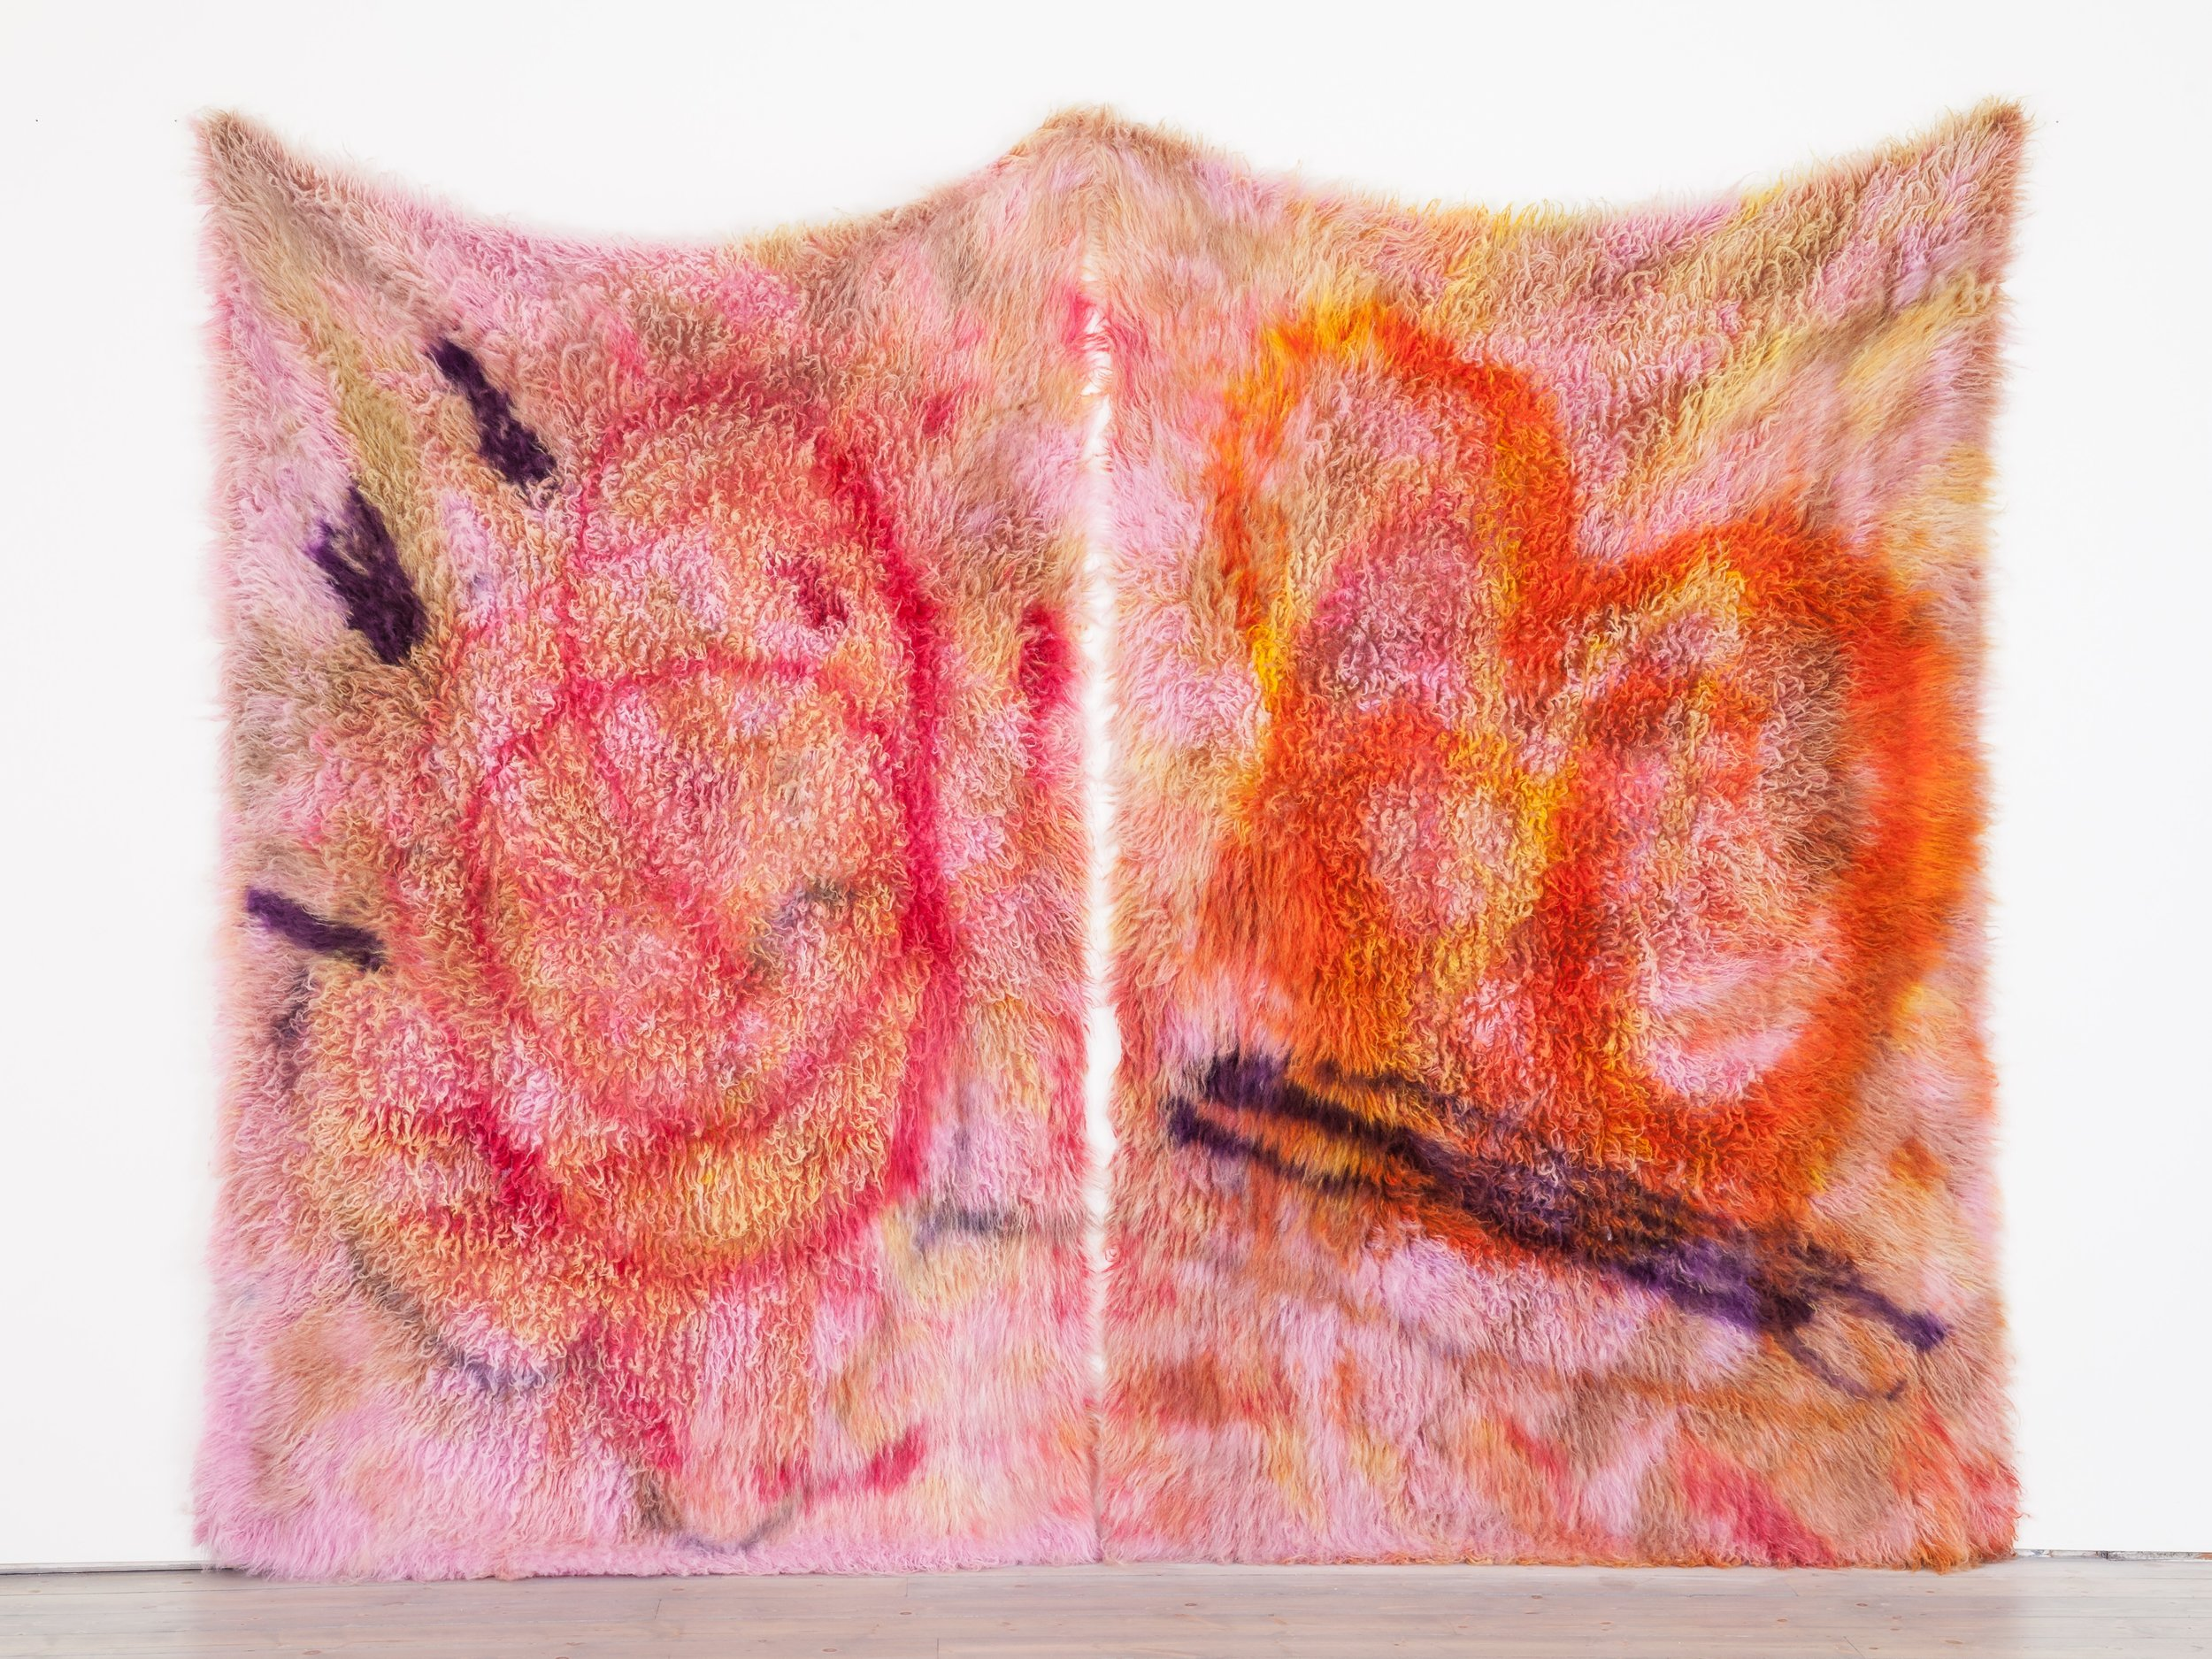 Diluted Delusion,  2014, logwood, acid dye, dye stripper, wool rug, 10'x 8'